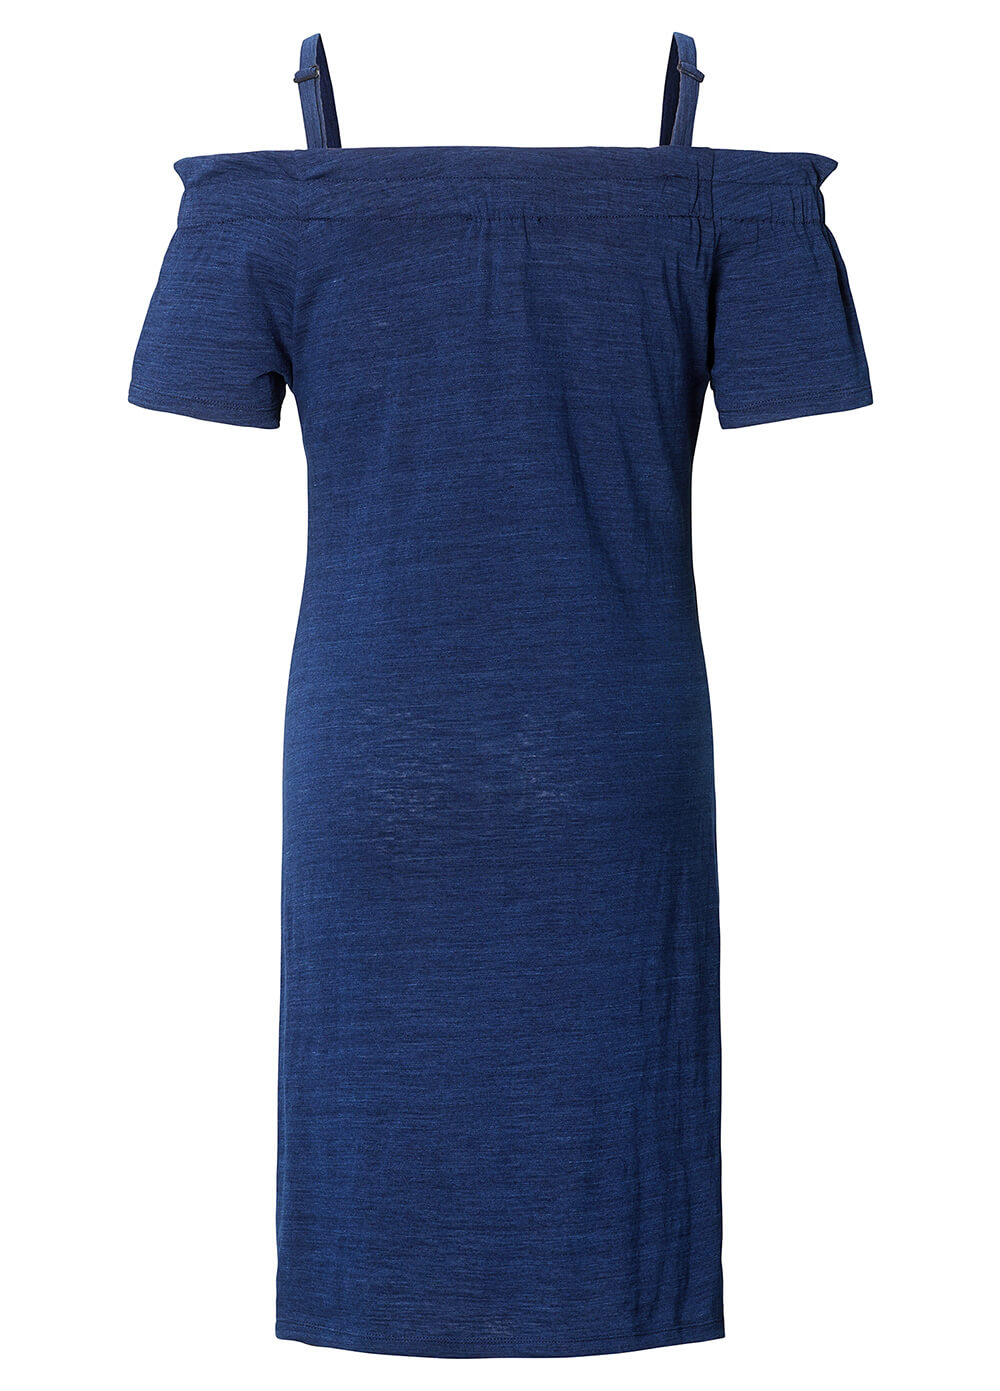 Azure Blue Off Shoulder Maternity Dress by Esprit